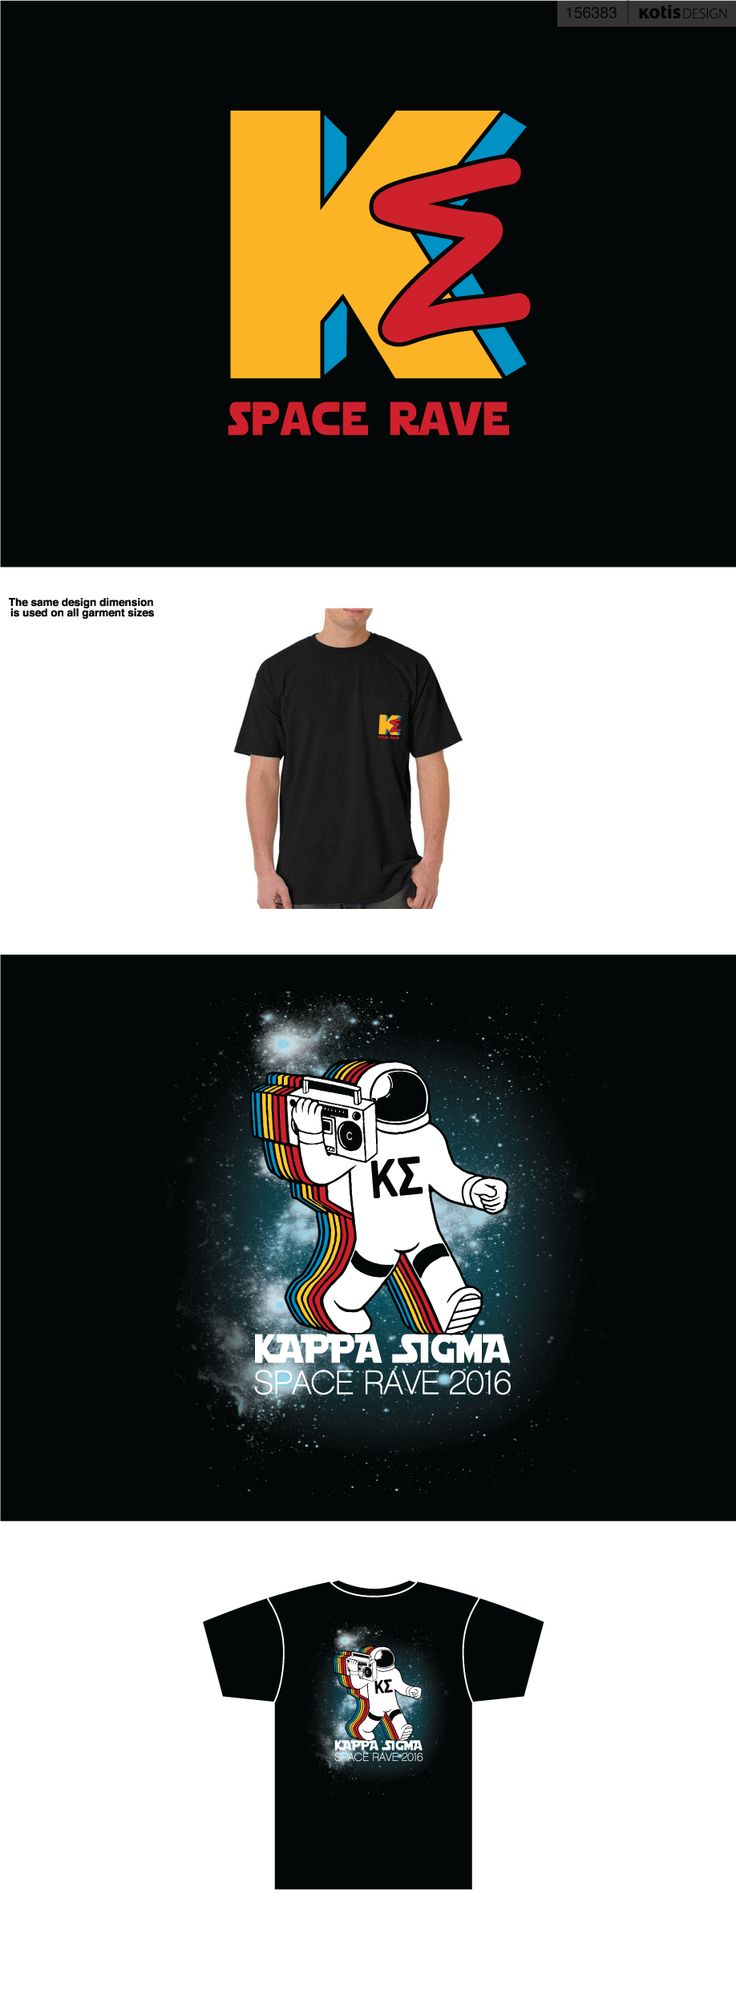 156383 - Vandy Kappa Sigma | Space Rave Shirts '16 - View Proof - Kotis Design